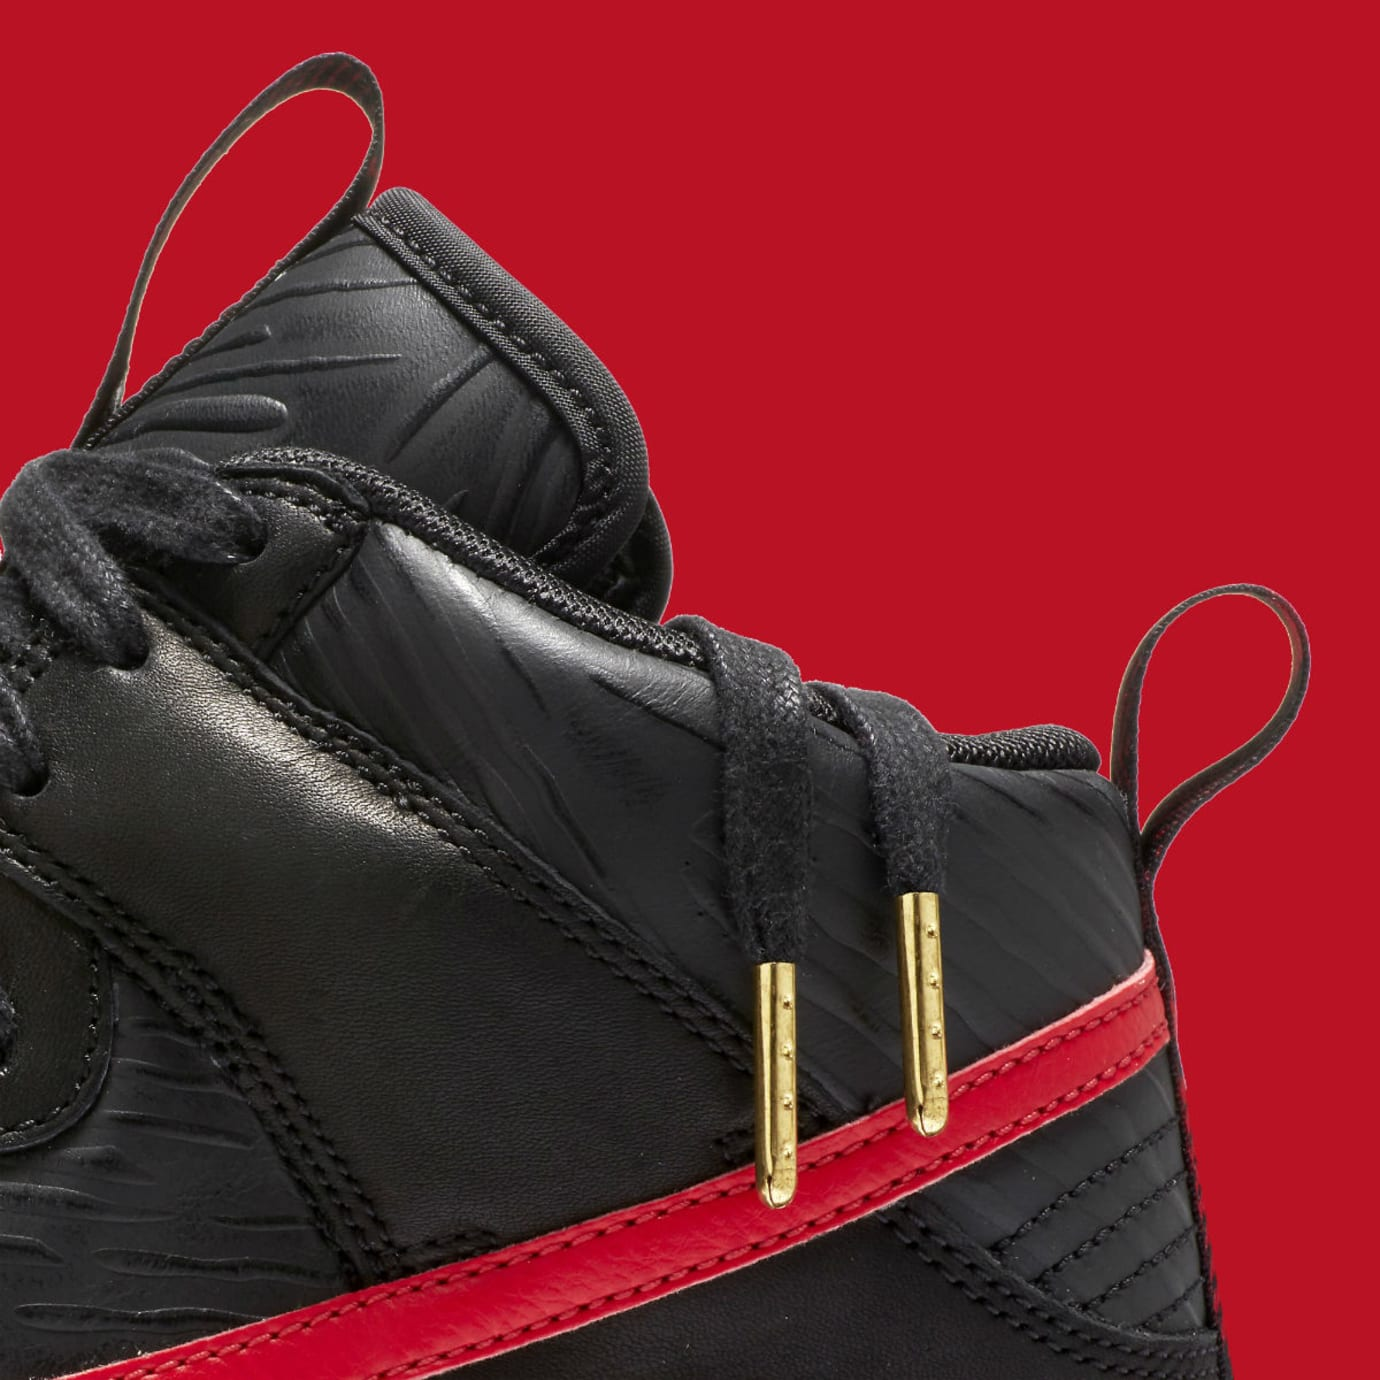 Nike N7 Dunk High Black Red Release Date Laces AA1126-001